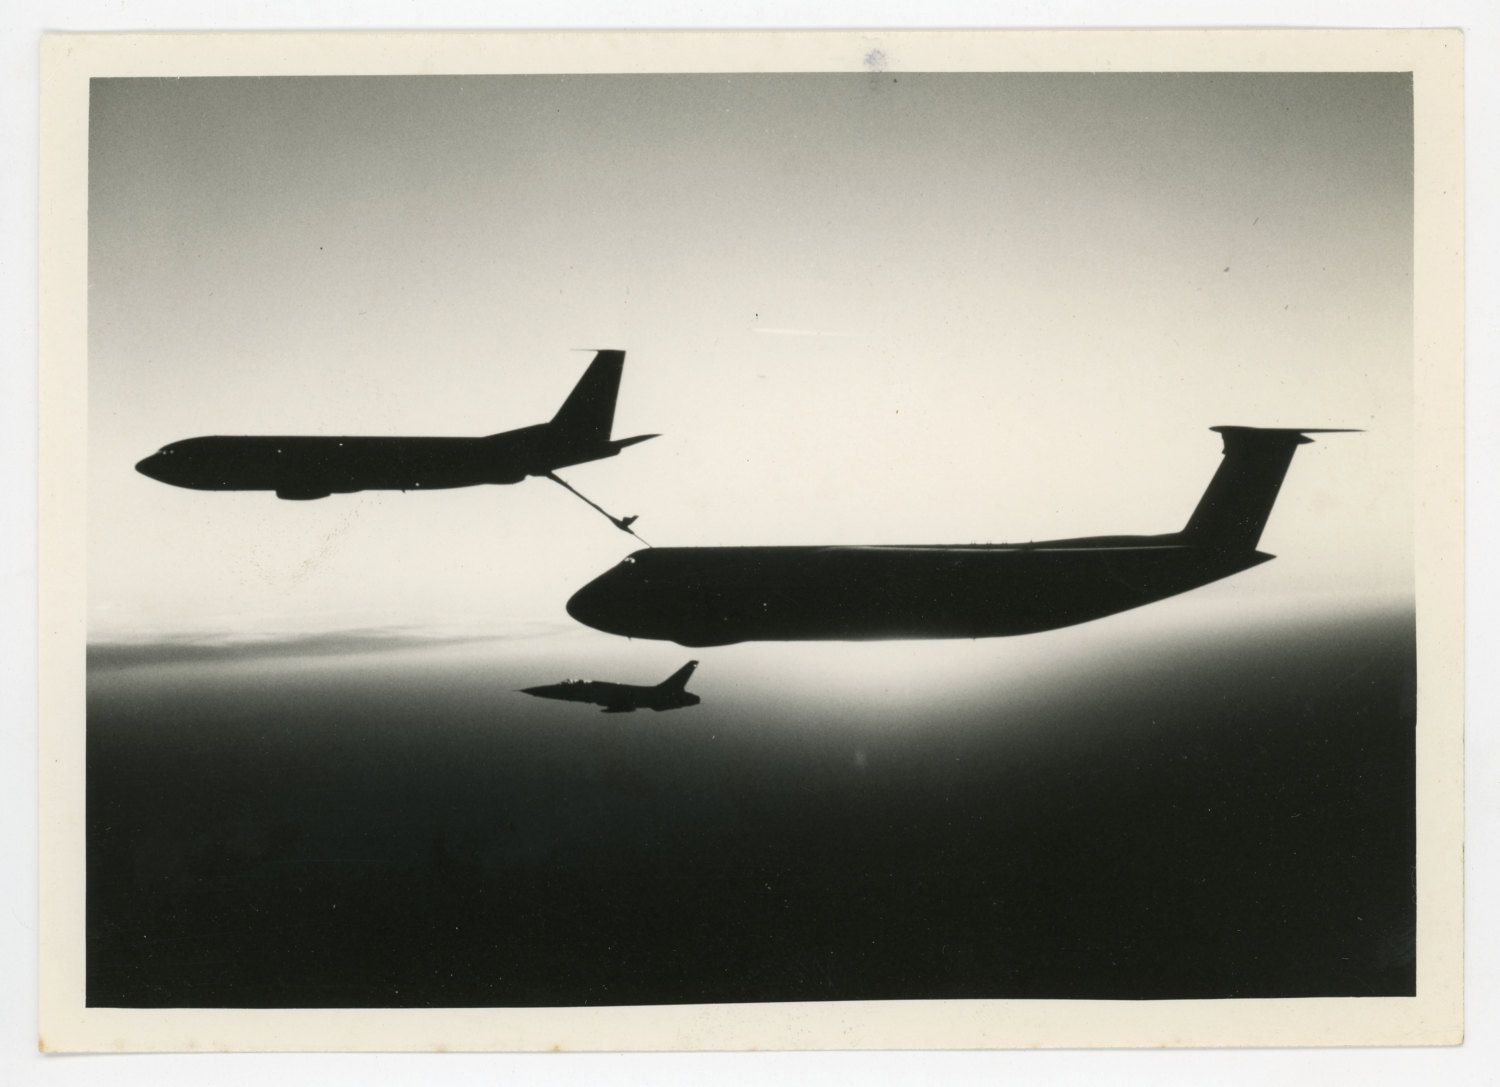 Aerial refueling C5 military aviation vintage photo